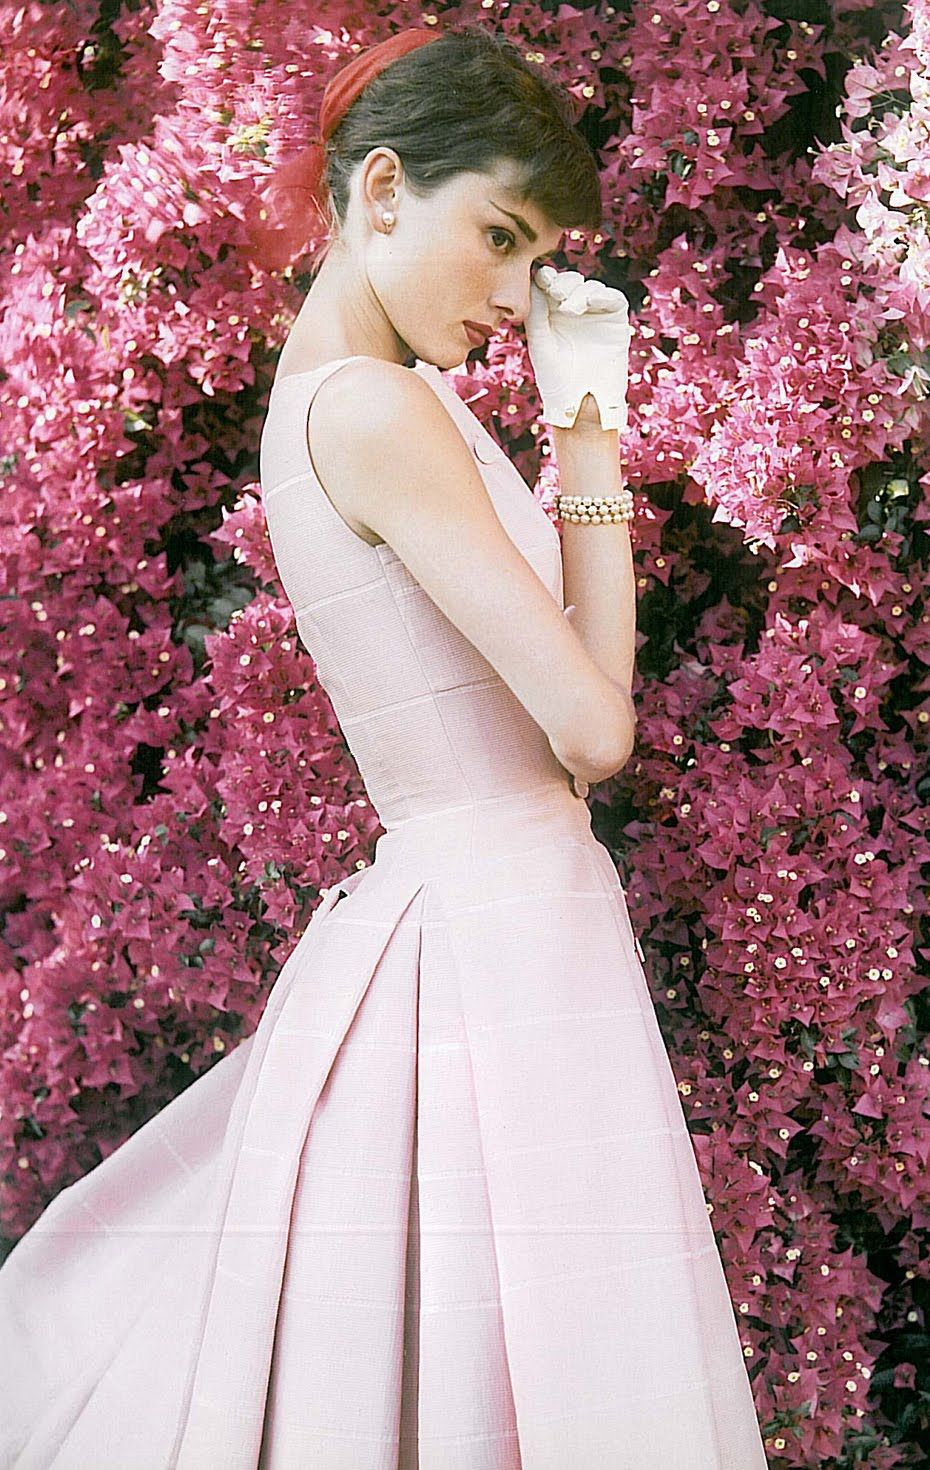 Audrey hepburn is pretty in pink obsessed pinterest audrey audrey hepburn is pretty in pink mightylinksfo Choice Image